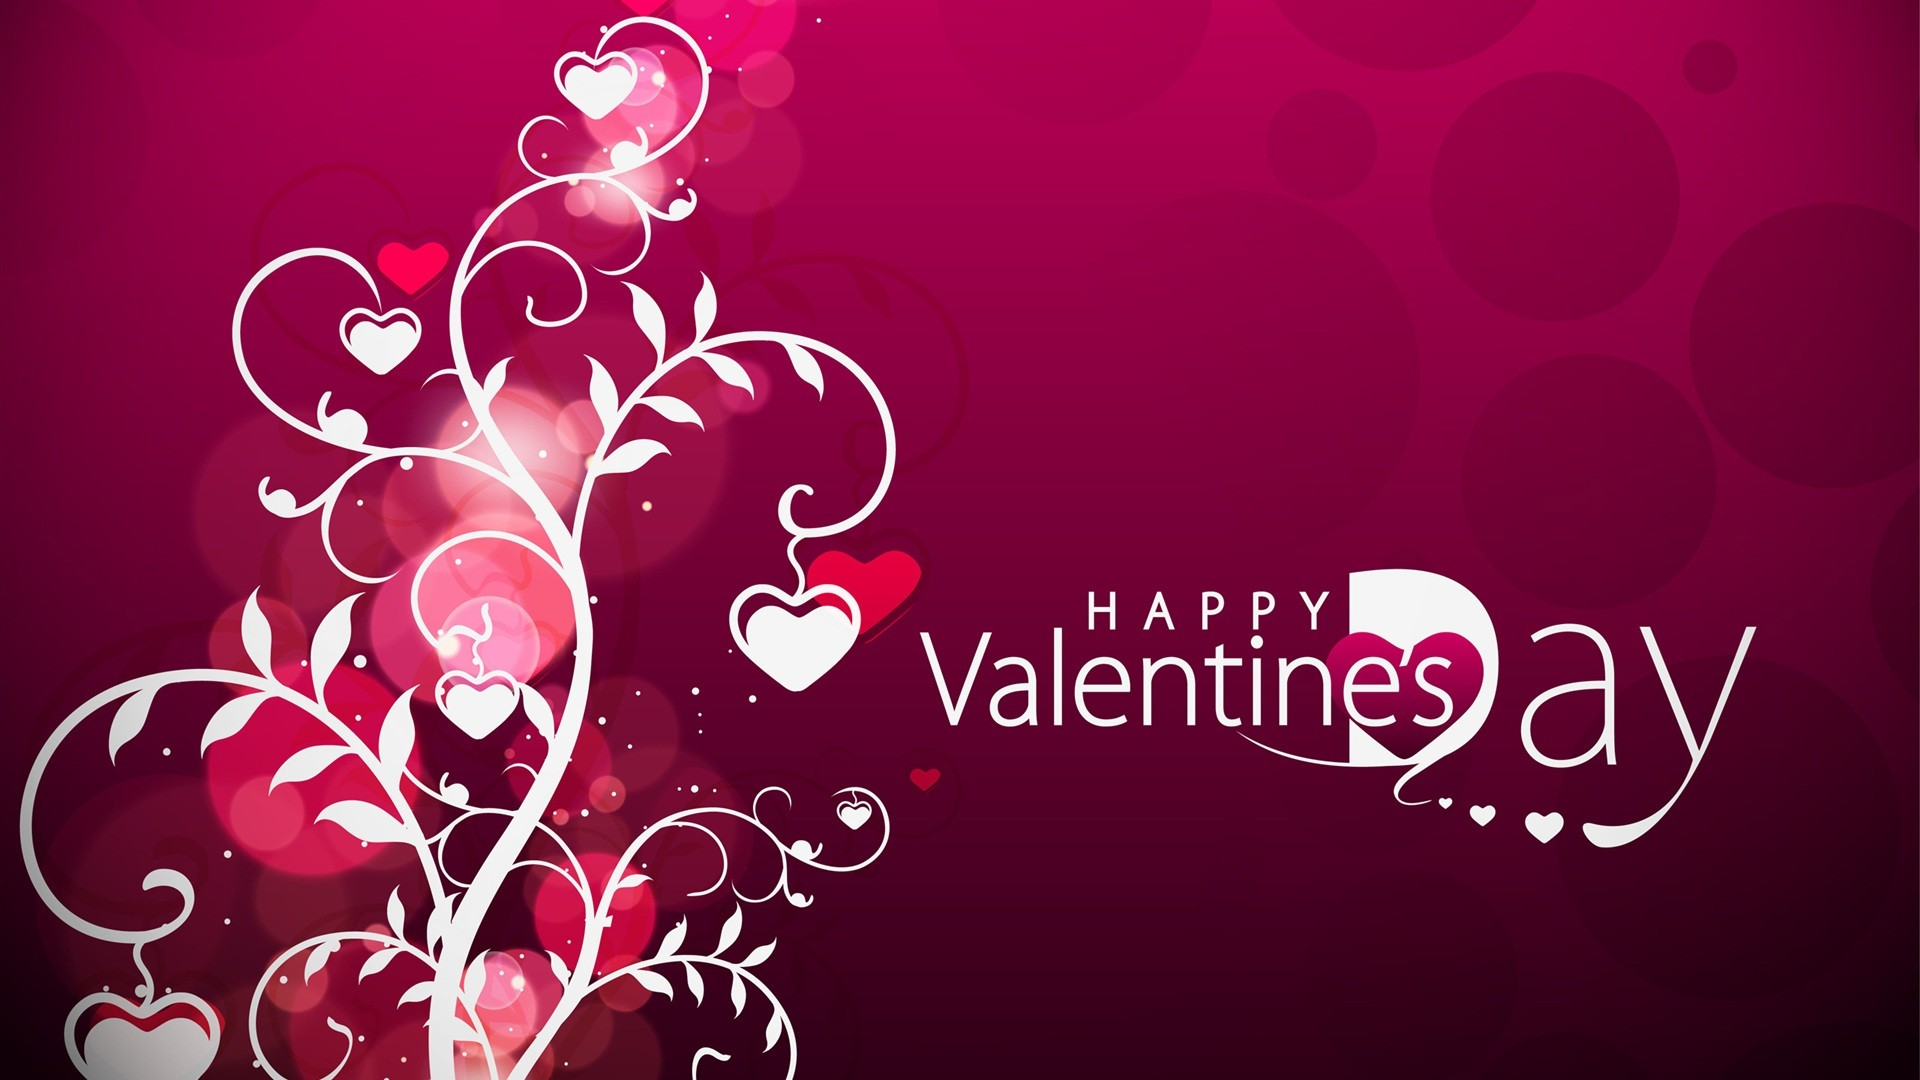 Valentines Day HD Wallpapers Backgrounds Pictures   Wallpapers 1920x1080